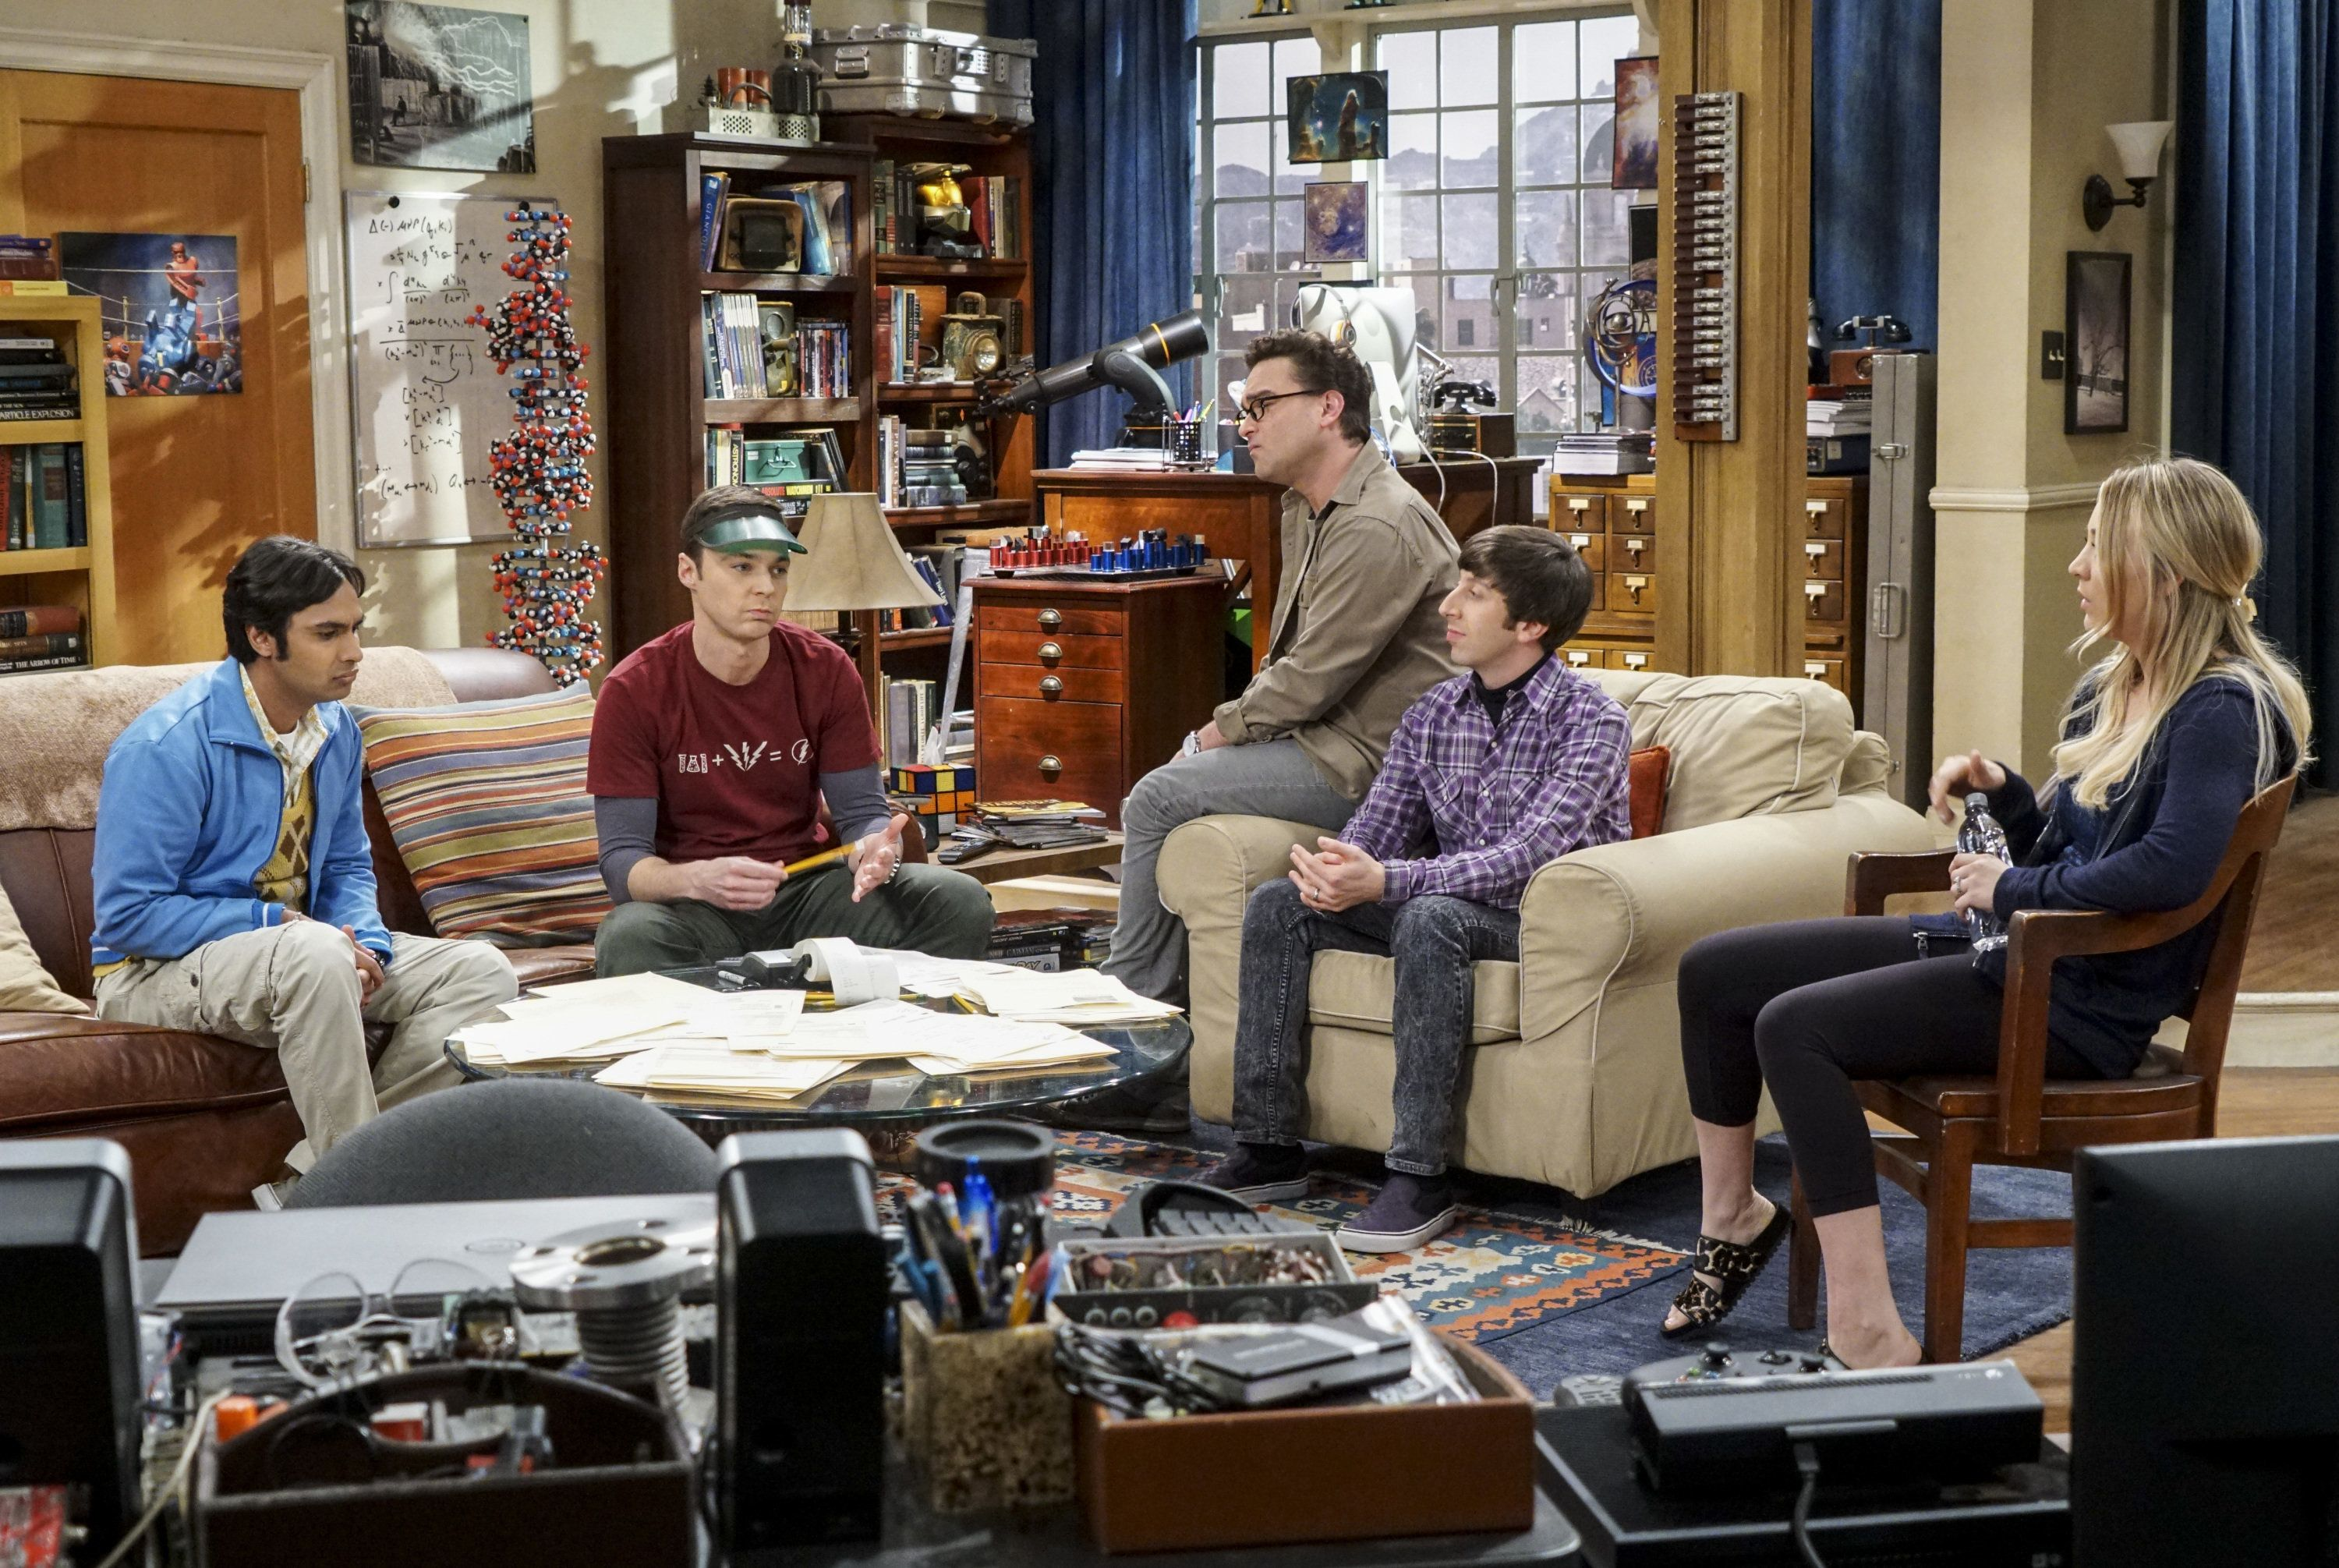 The 'Big Bang Theory' Casts' Total Earnings Are Unbelievably